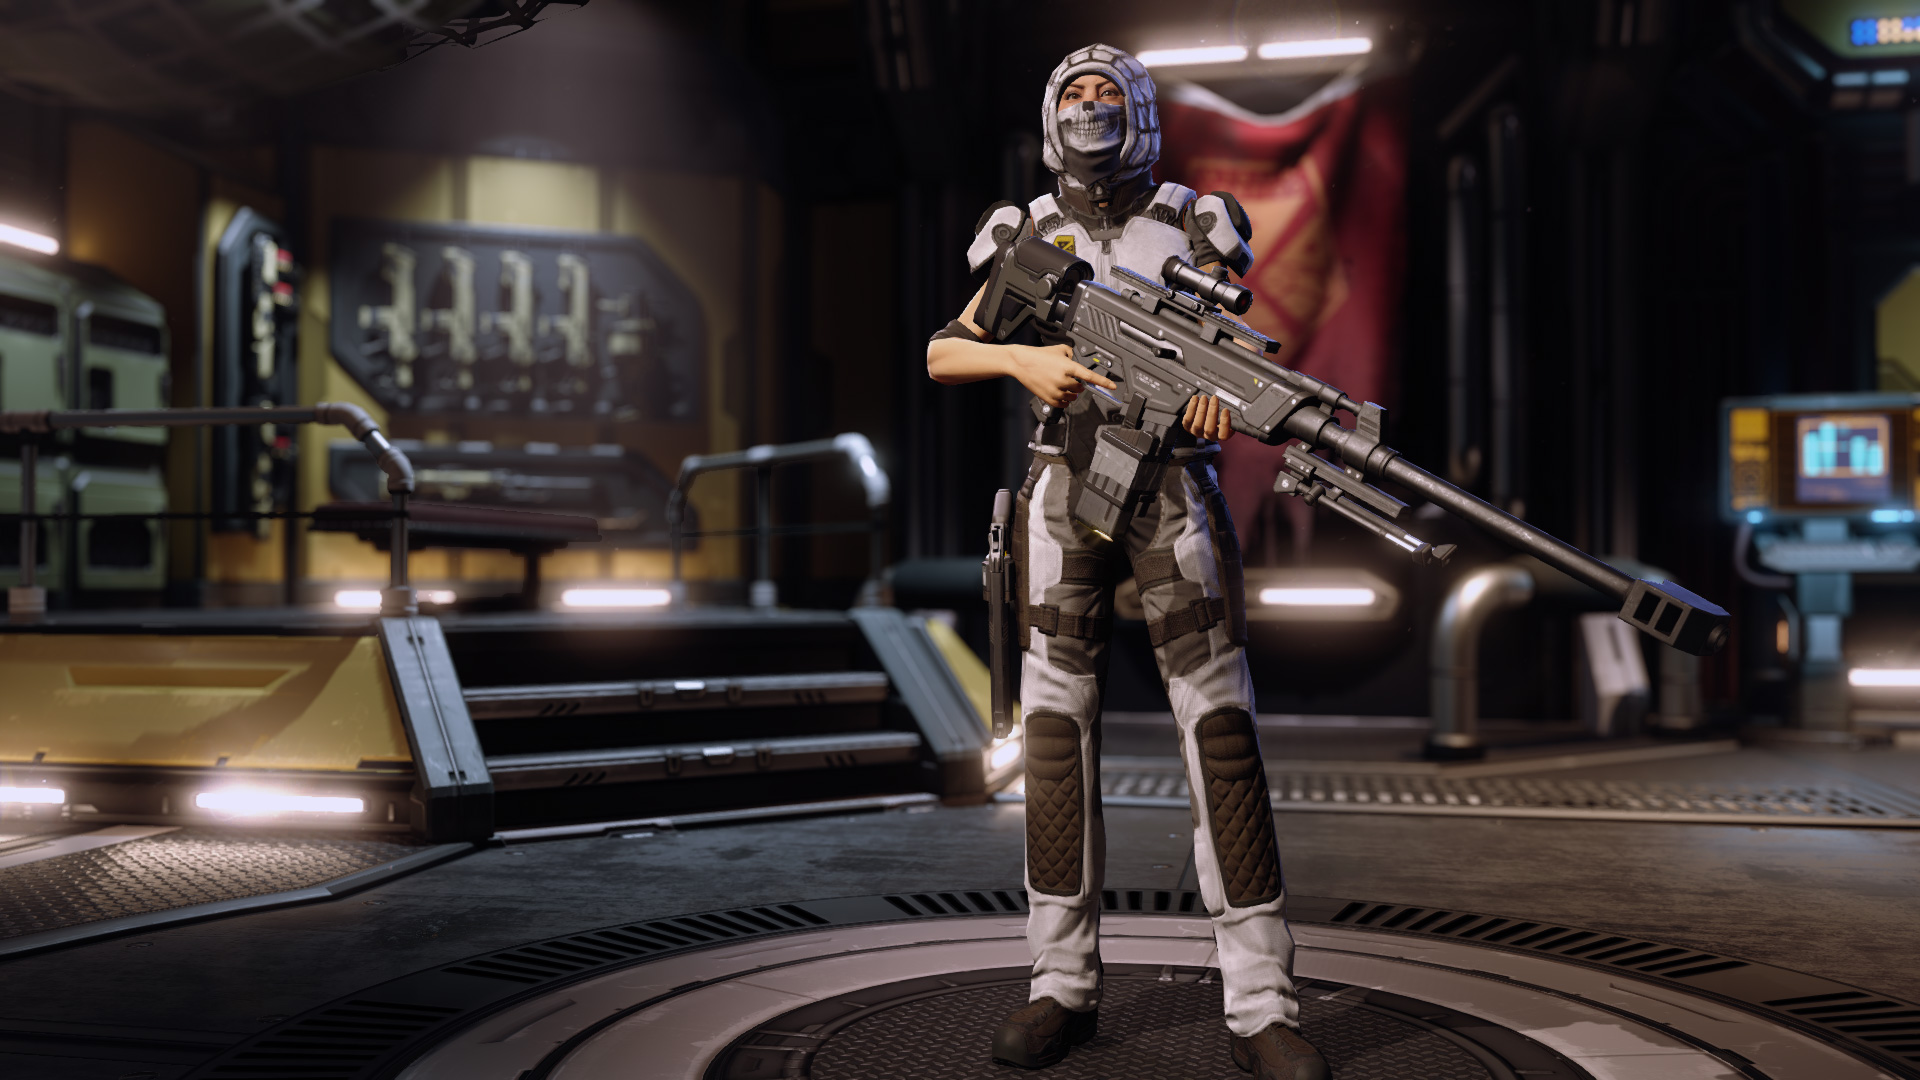 EN - The Sharpshooter Takes Aim in XCOM